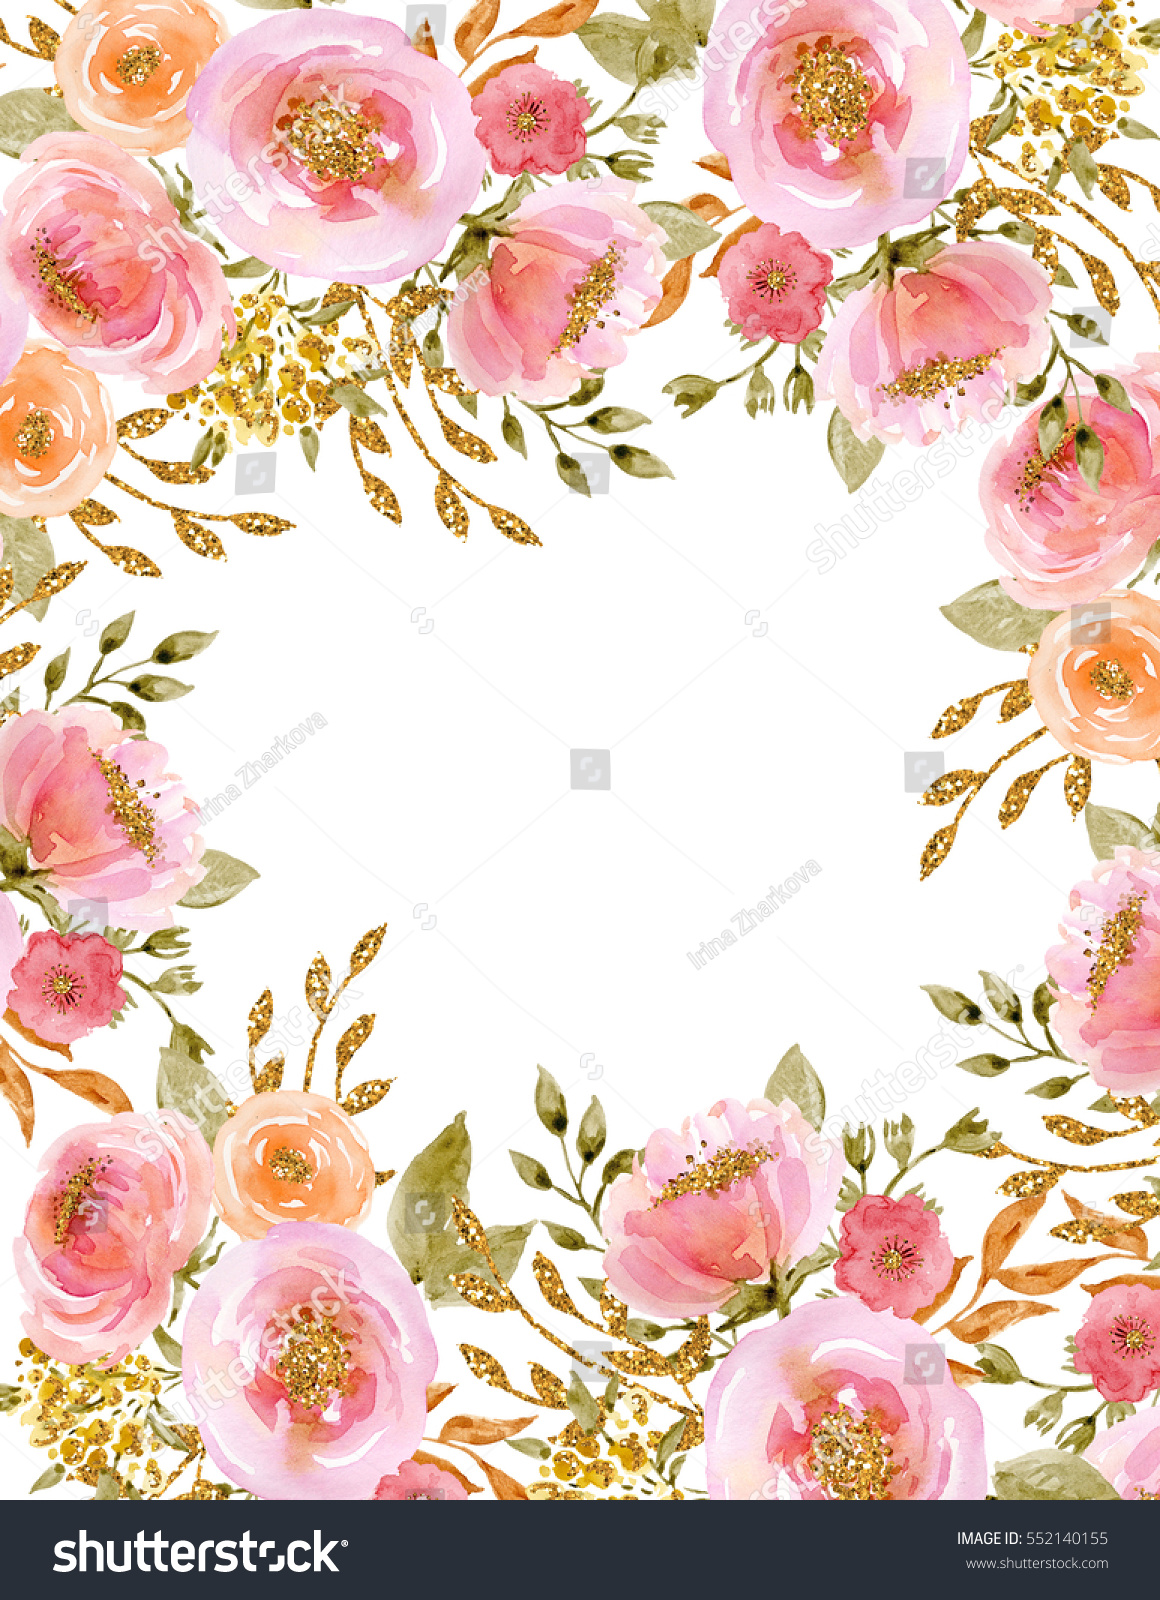 Painted watercolor composition flowers gold sparkle stock painted watercolor composition of flowers with gold sparkle frame border background greeting mightylinksfo